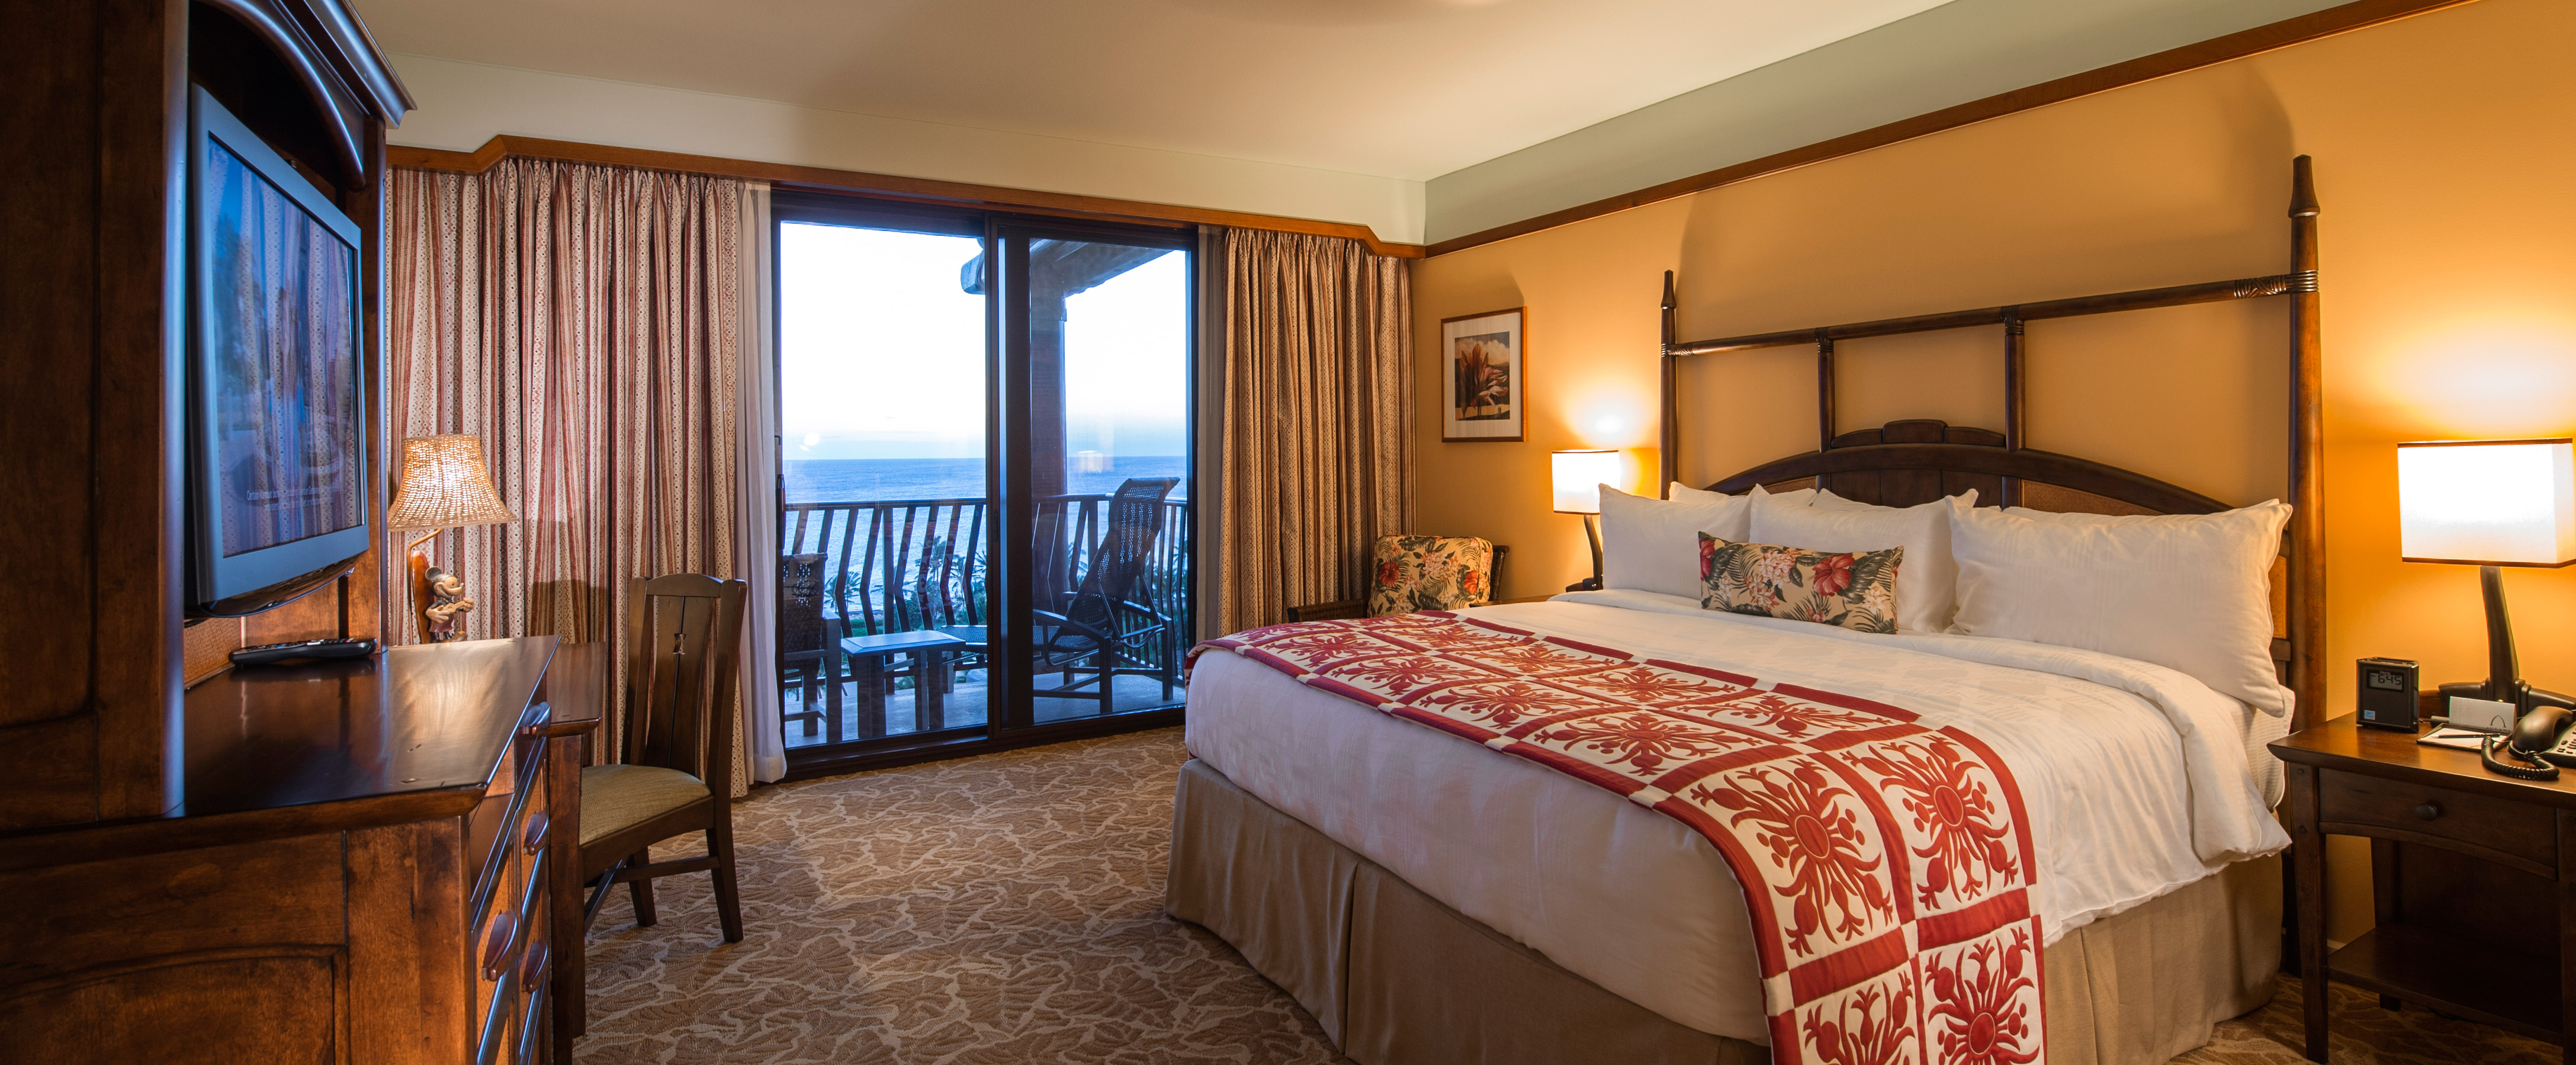 Three bedroom grand villa aulani hawaii resort spa for Three bed